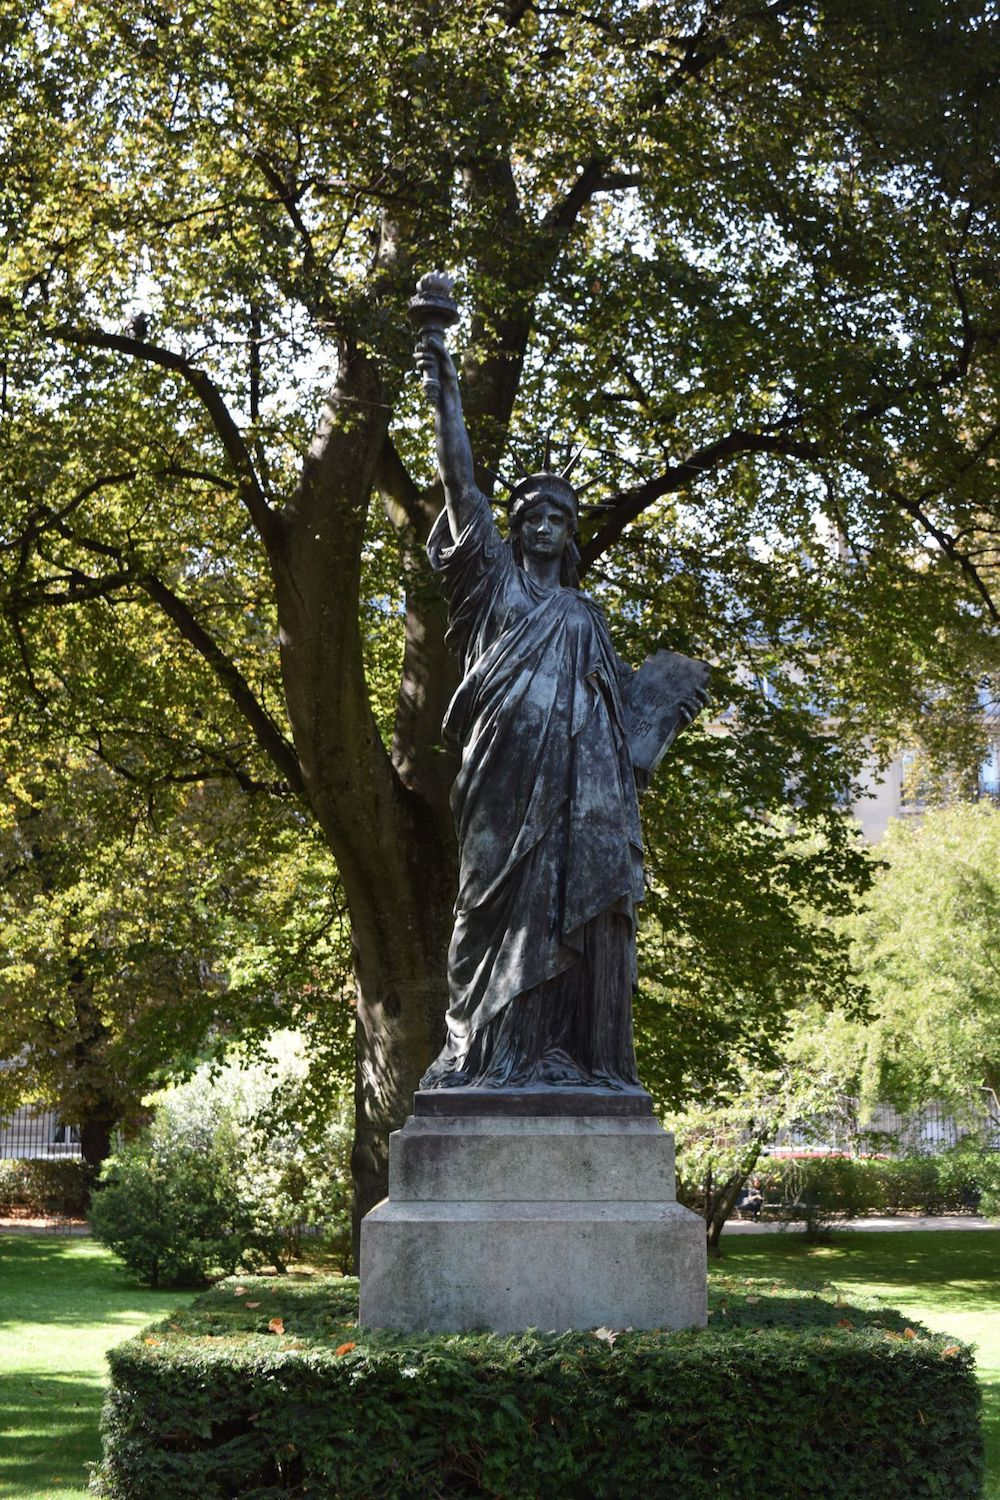 See the Statue of Liberty in the Jardin Du Luxembourg, Paris